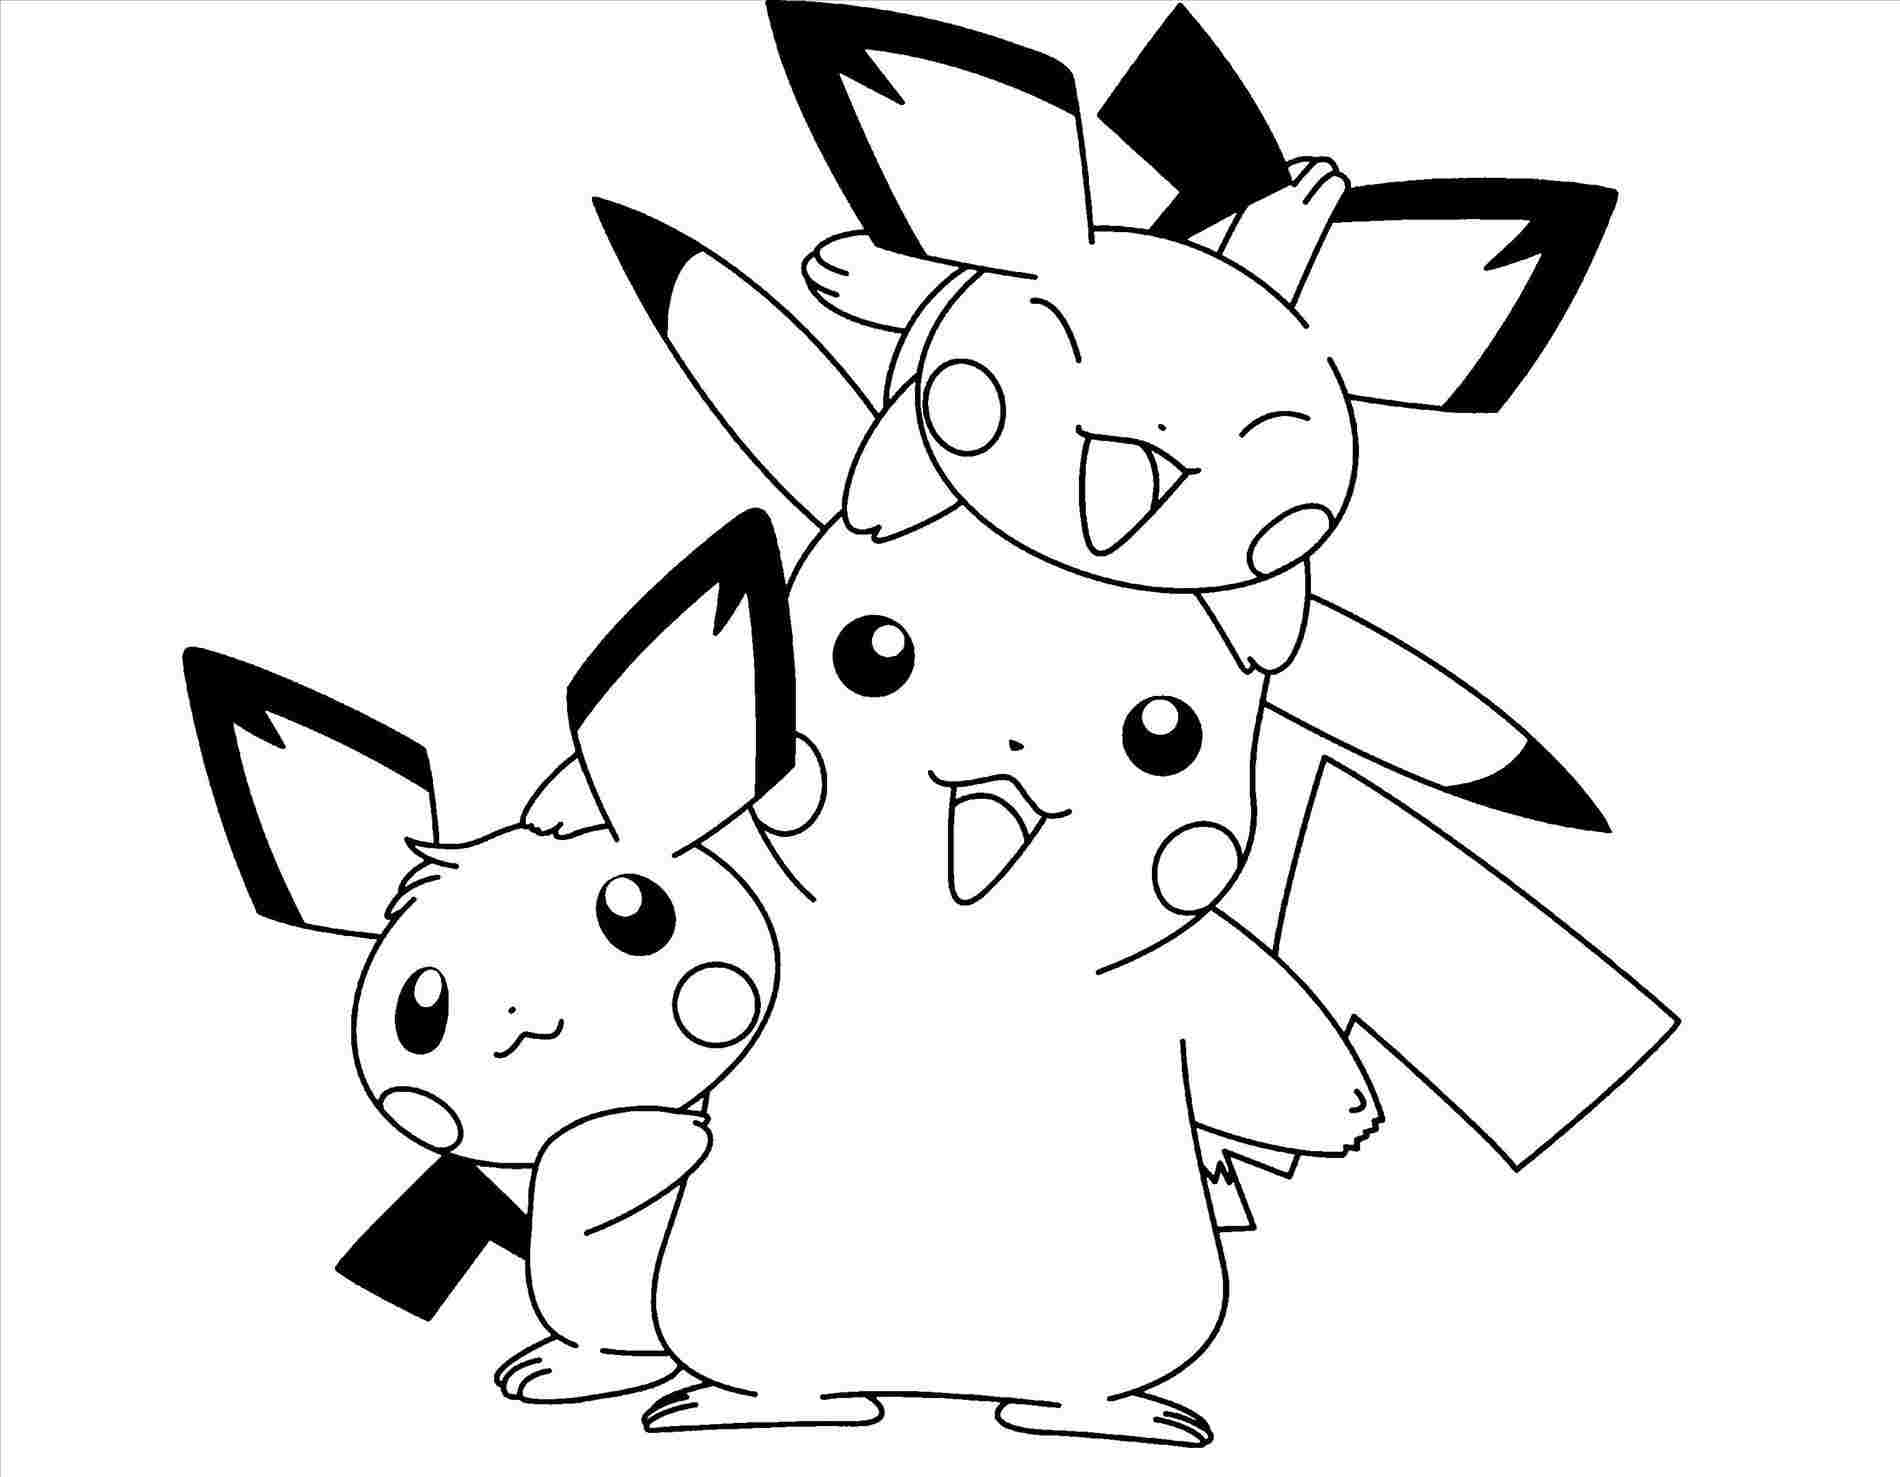 draw pikachu pikachu images for drawing at getdrawings free download pikachu draw